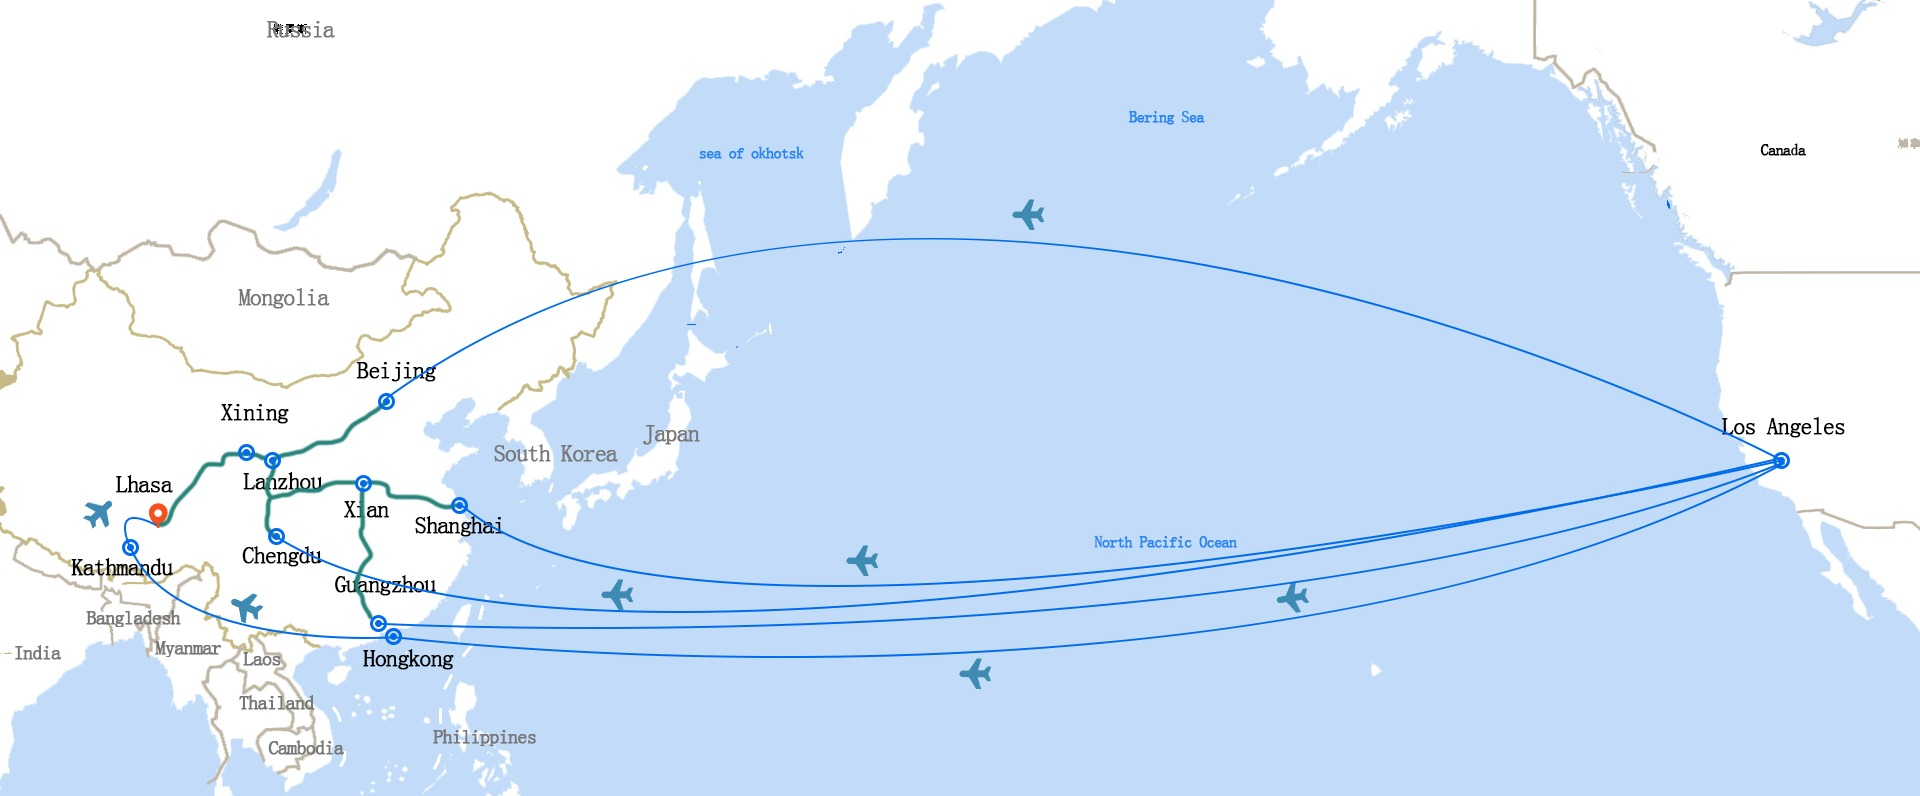 You have to fly from Los Angeles to mainland China first, then to Tibet.